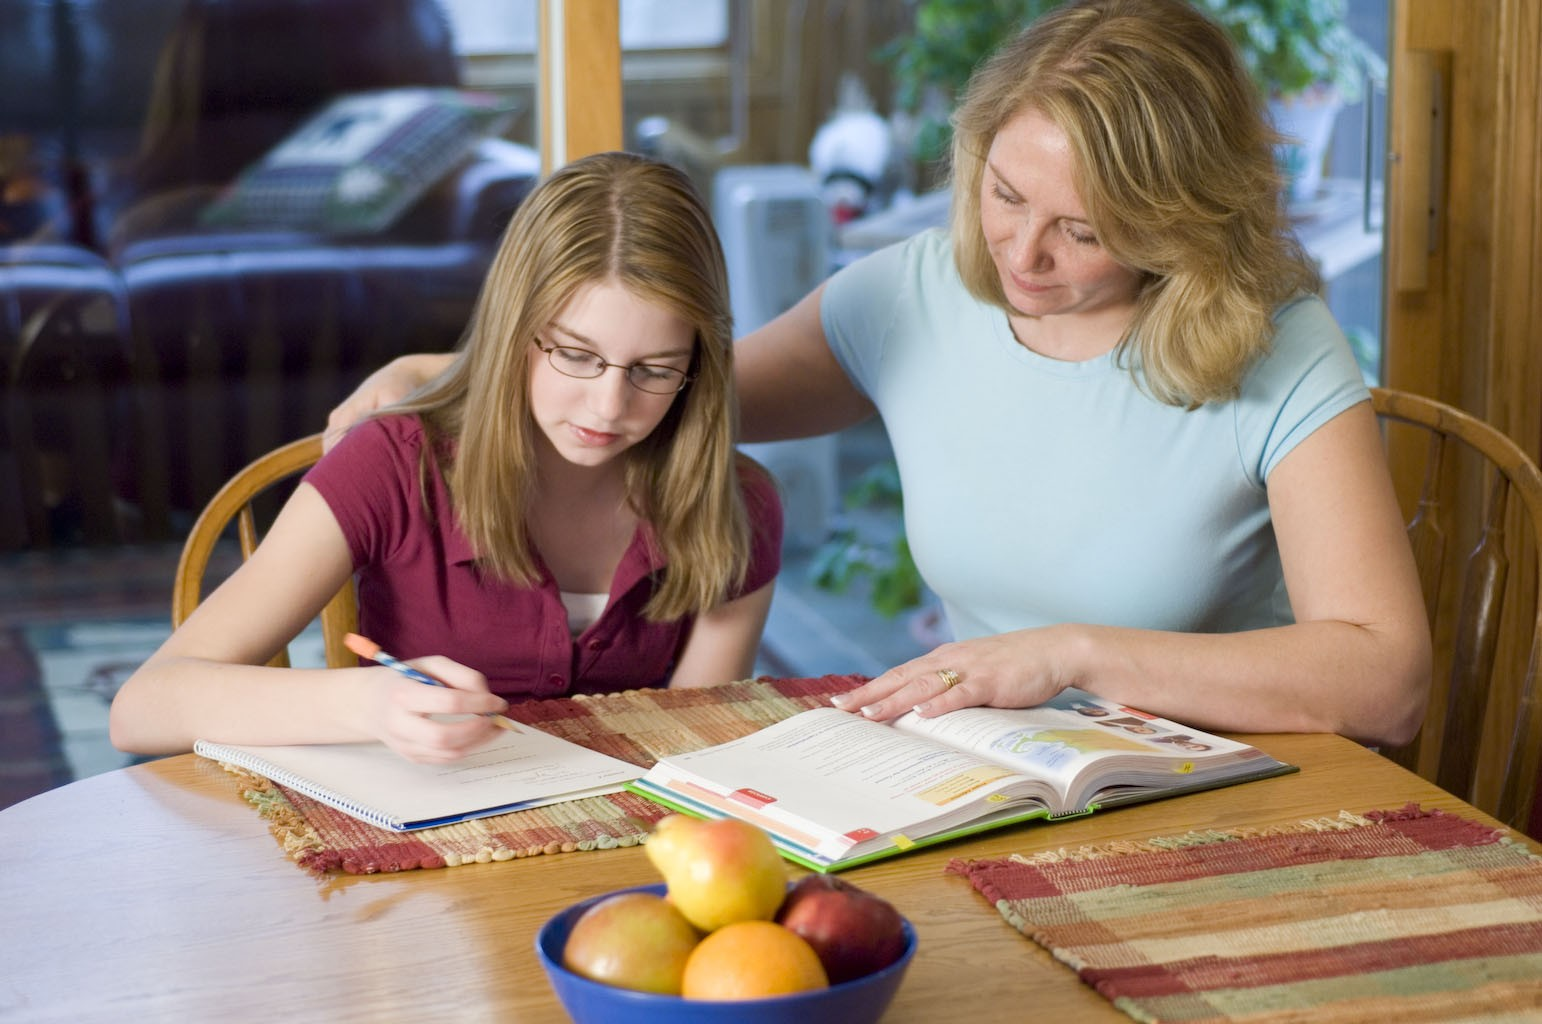 10 Things This Homeschooling Mom Does NOT Miss About Traditional School